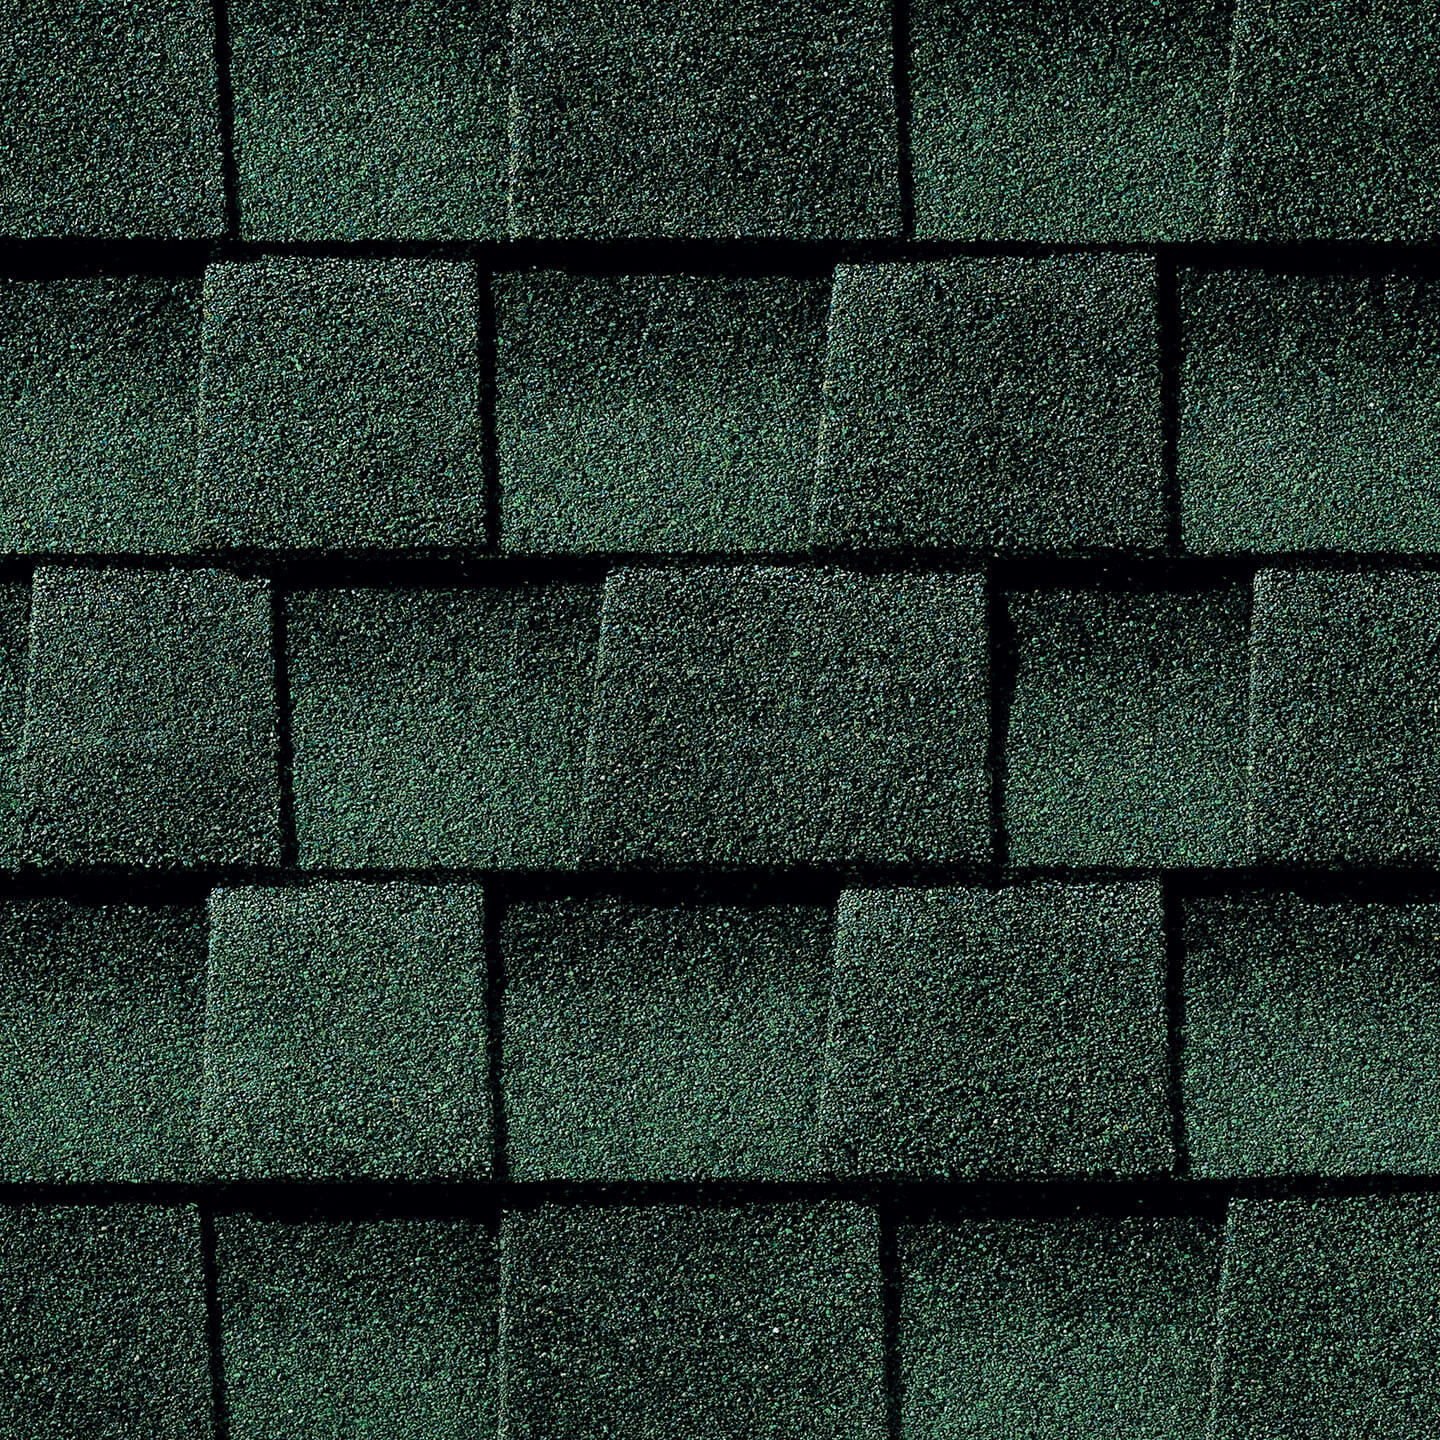 Timberline Hunter Green shingle sample